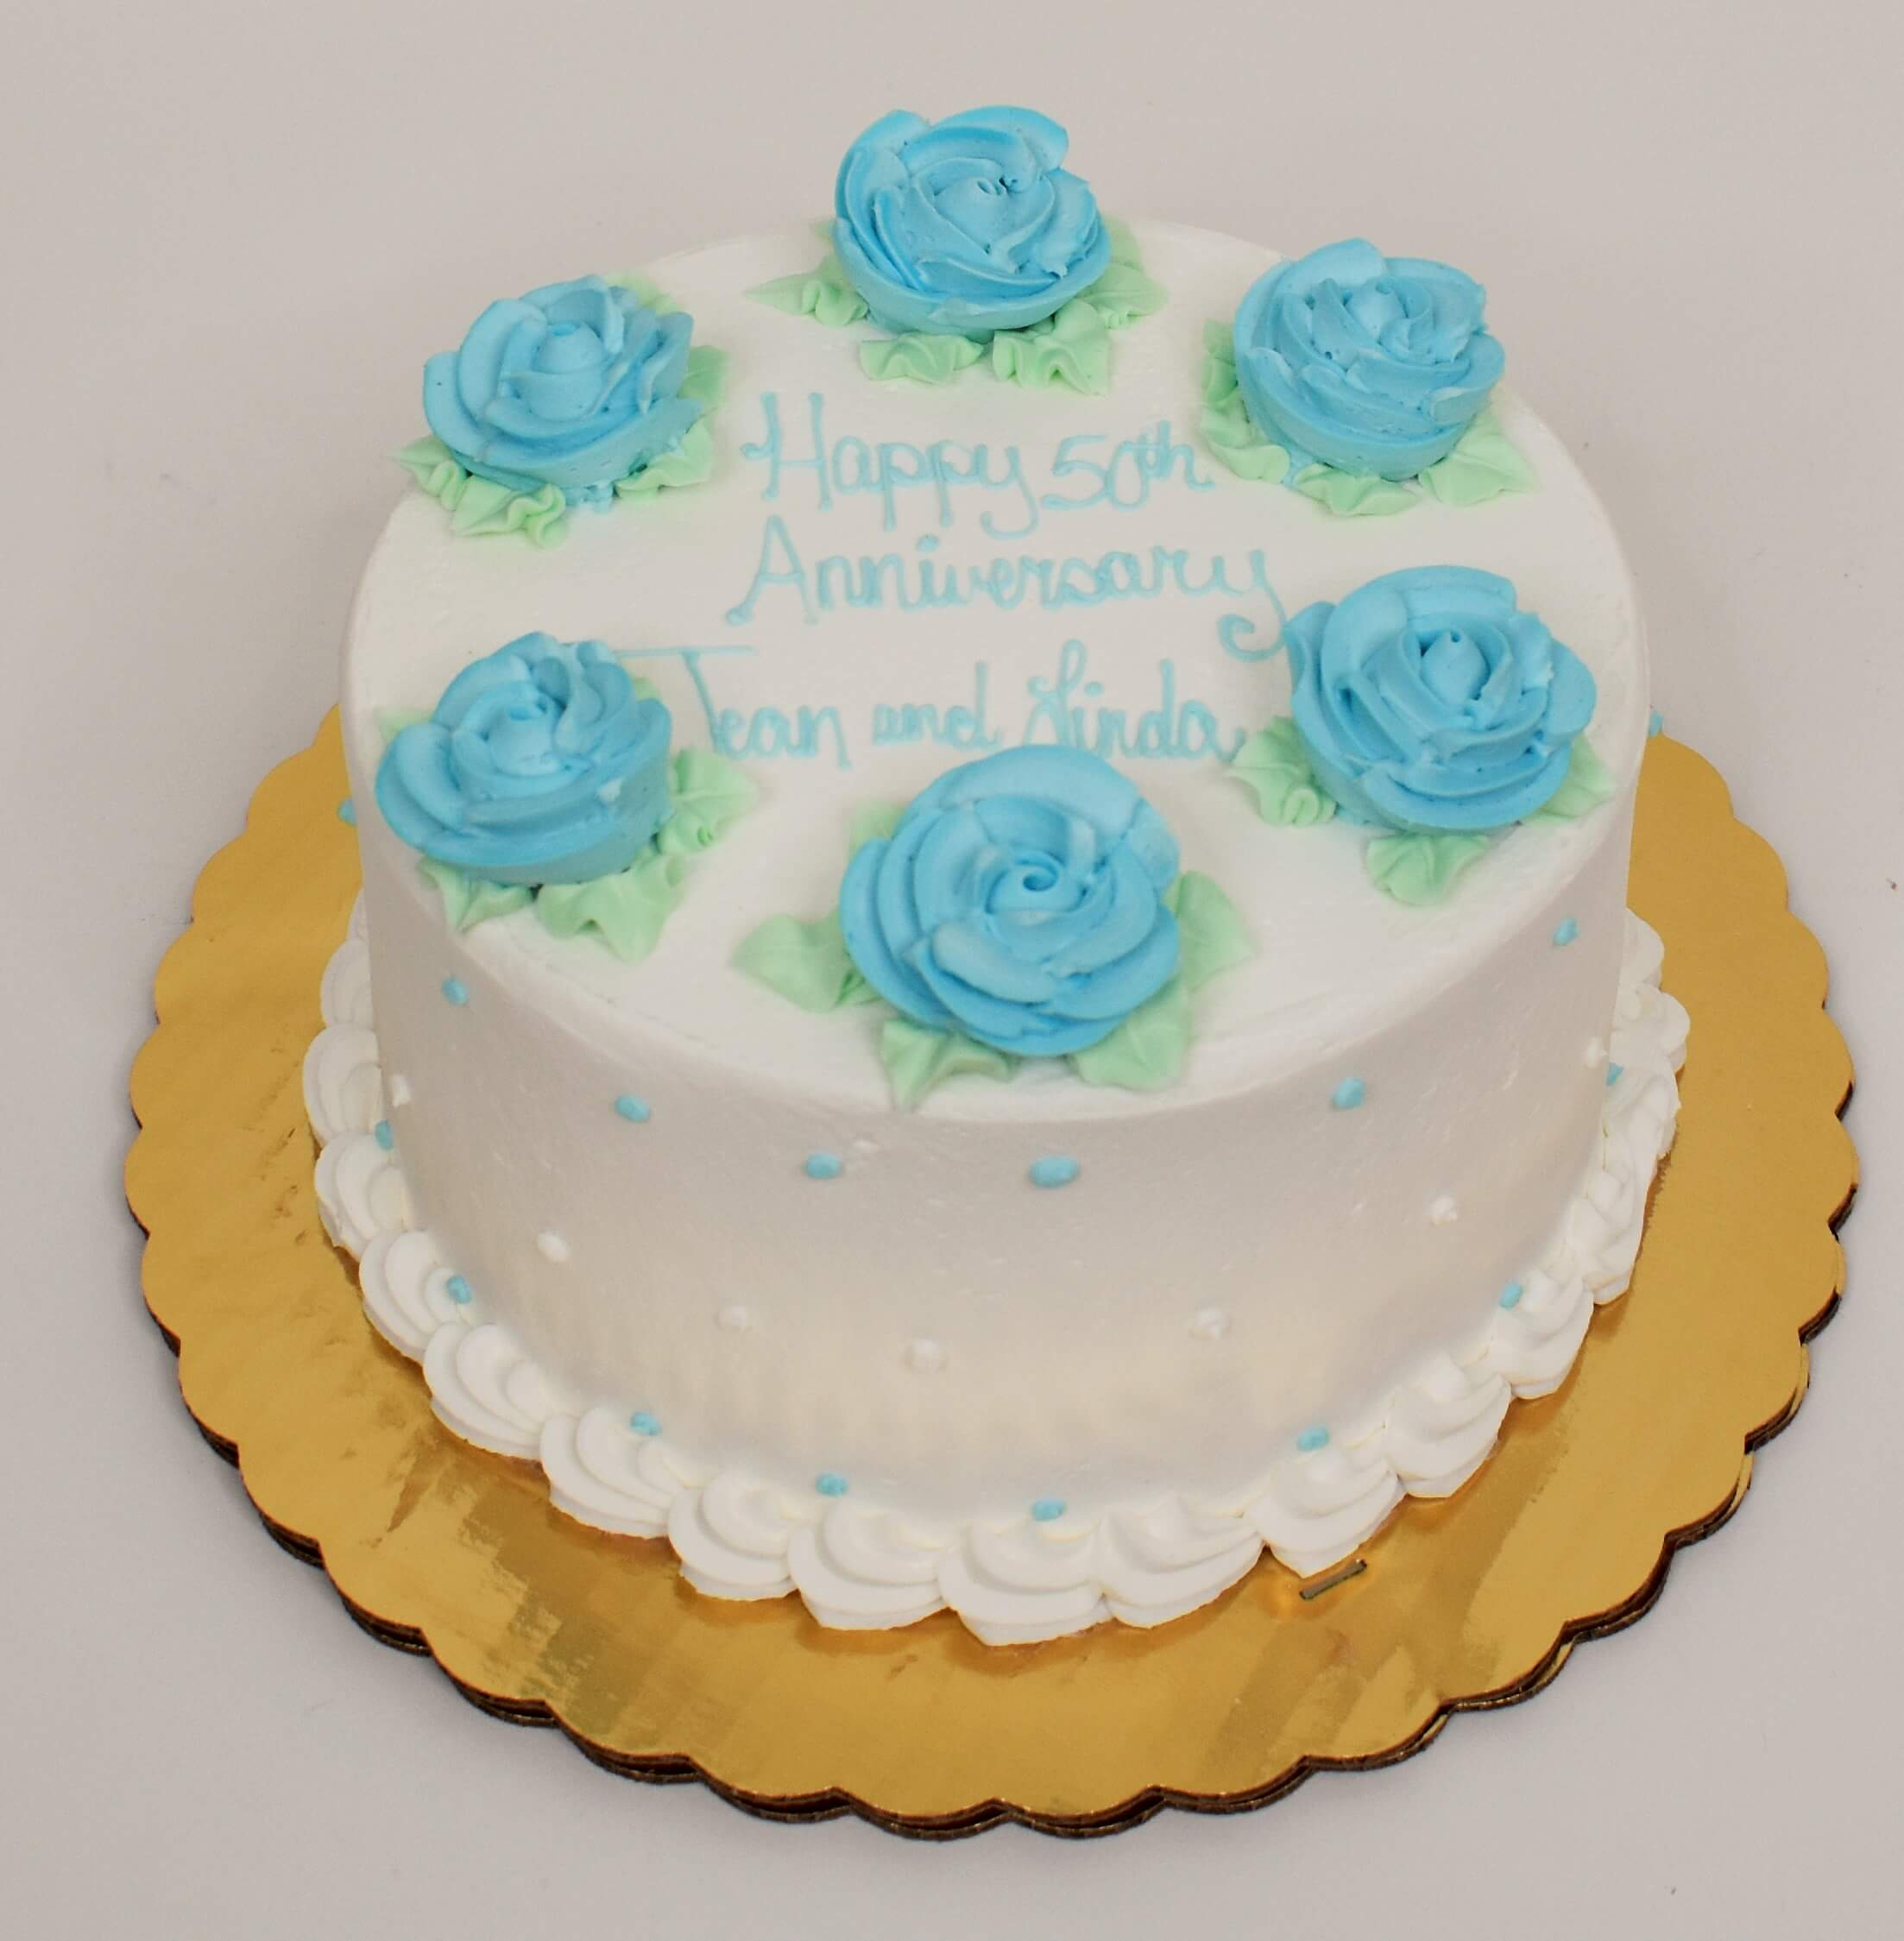 McArthur's Bakery Custom Cake With Six Light Blue Roses